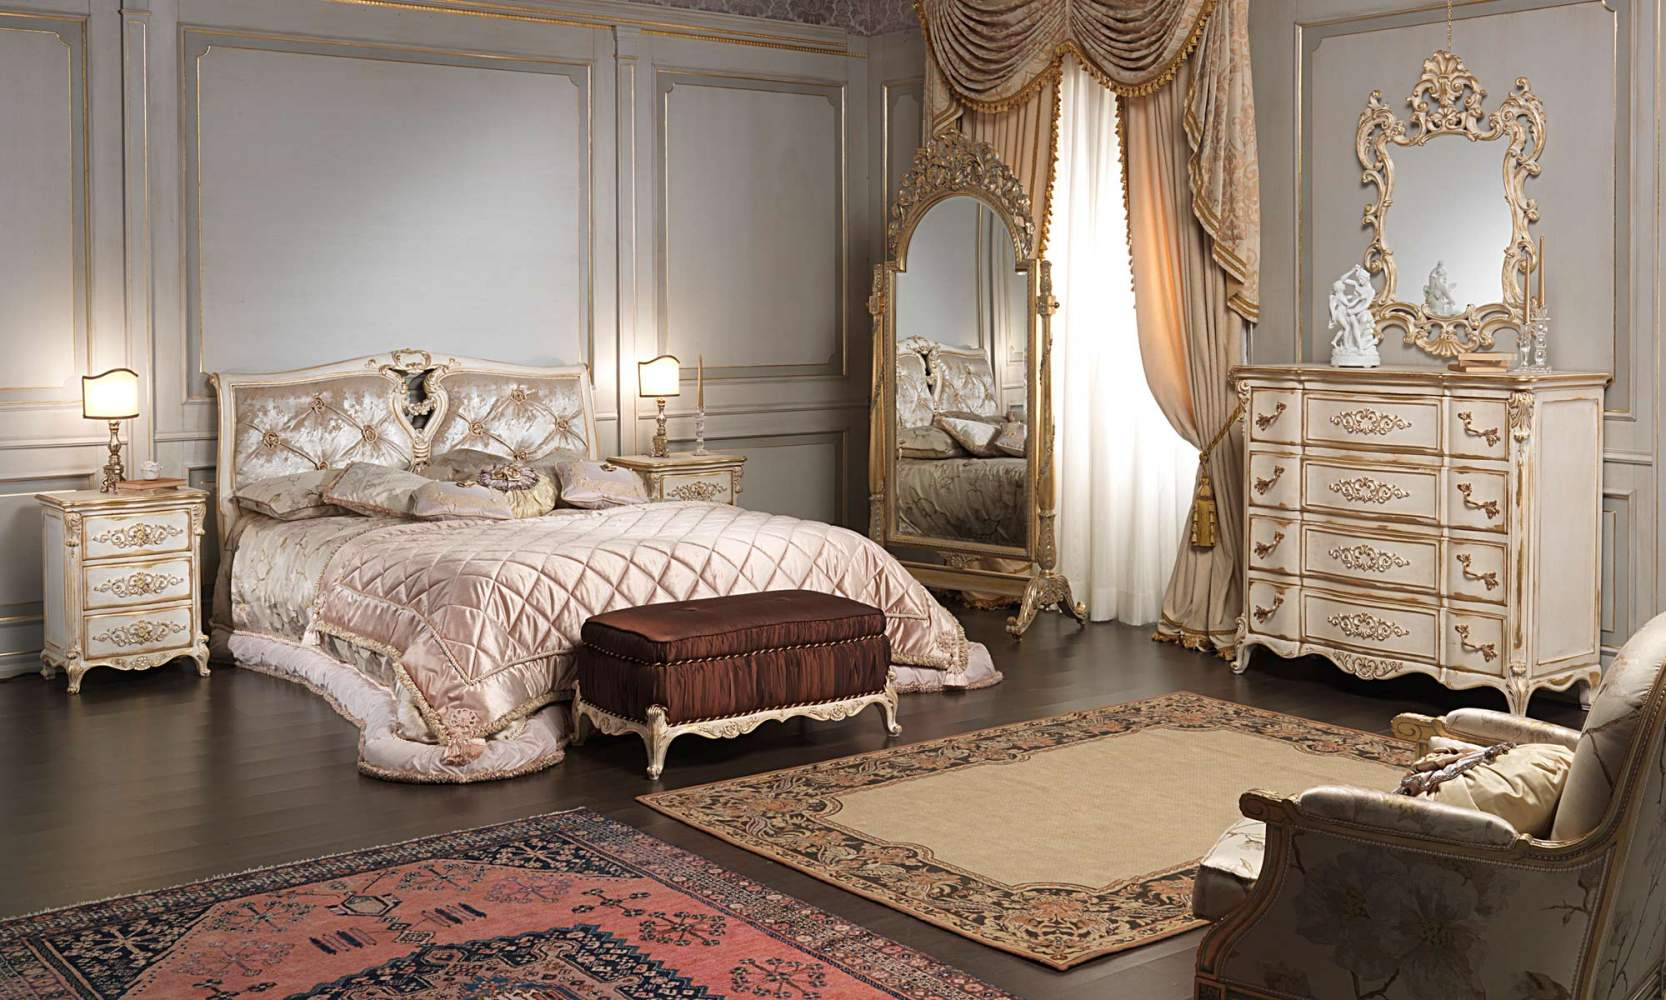 Furniture of bedroom Luigi XVI with capitonné headboard and carved furnishings, all in luxury classic style Luigi XVI